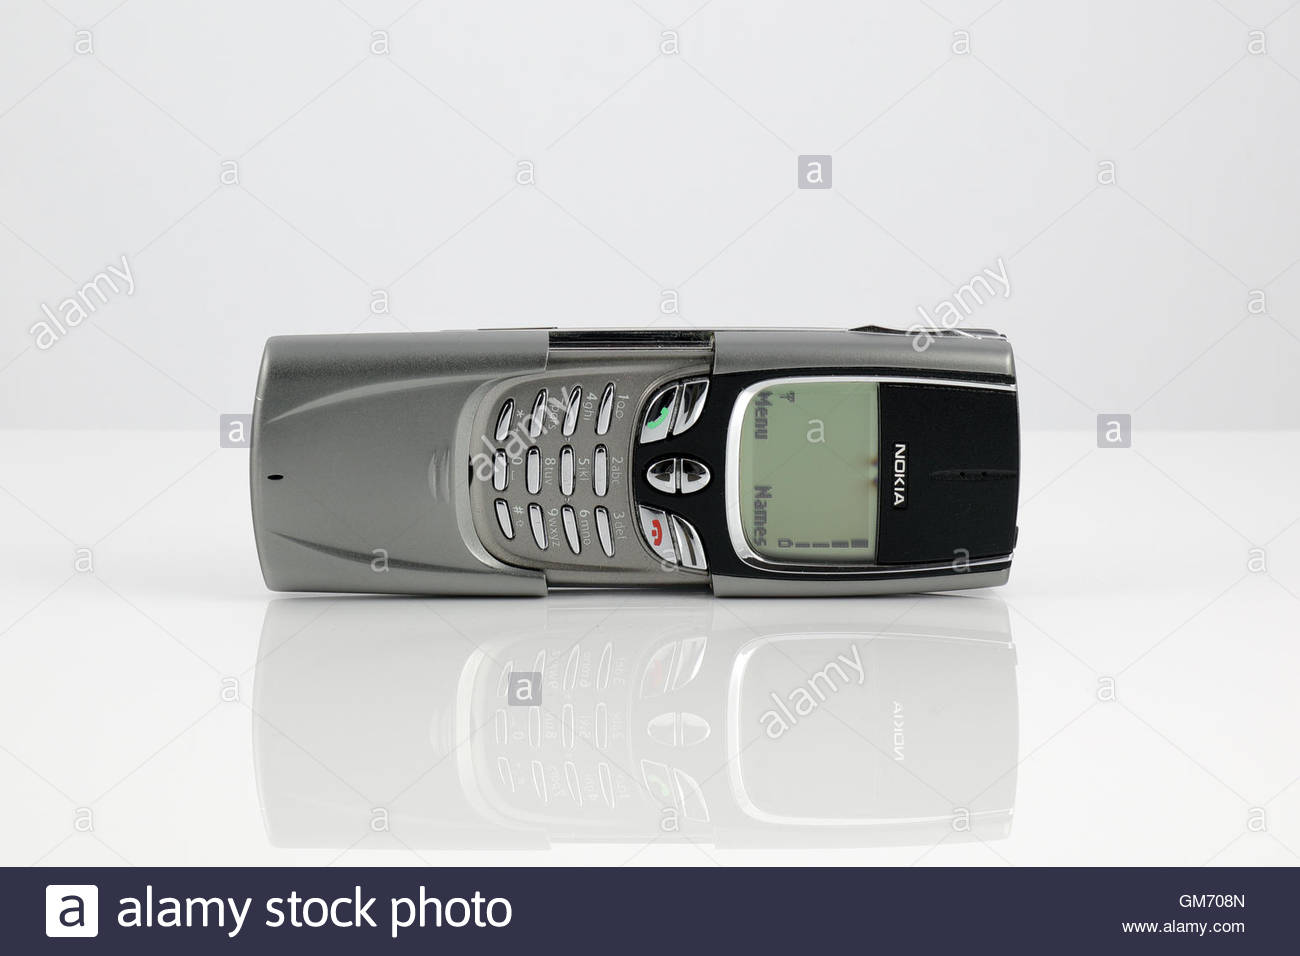 Nokia 8890 mobile phone reflecting off a white surface - Stock Image